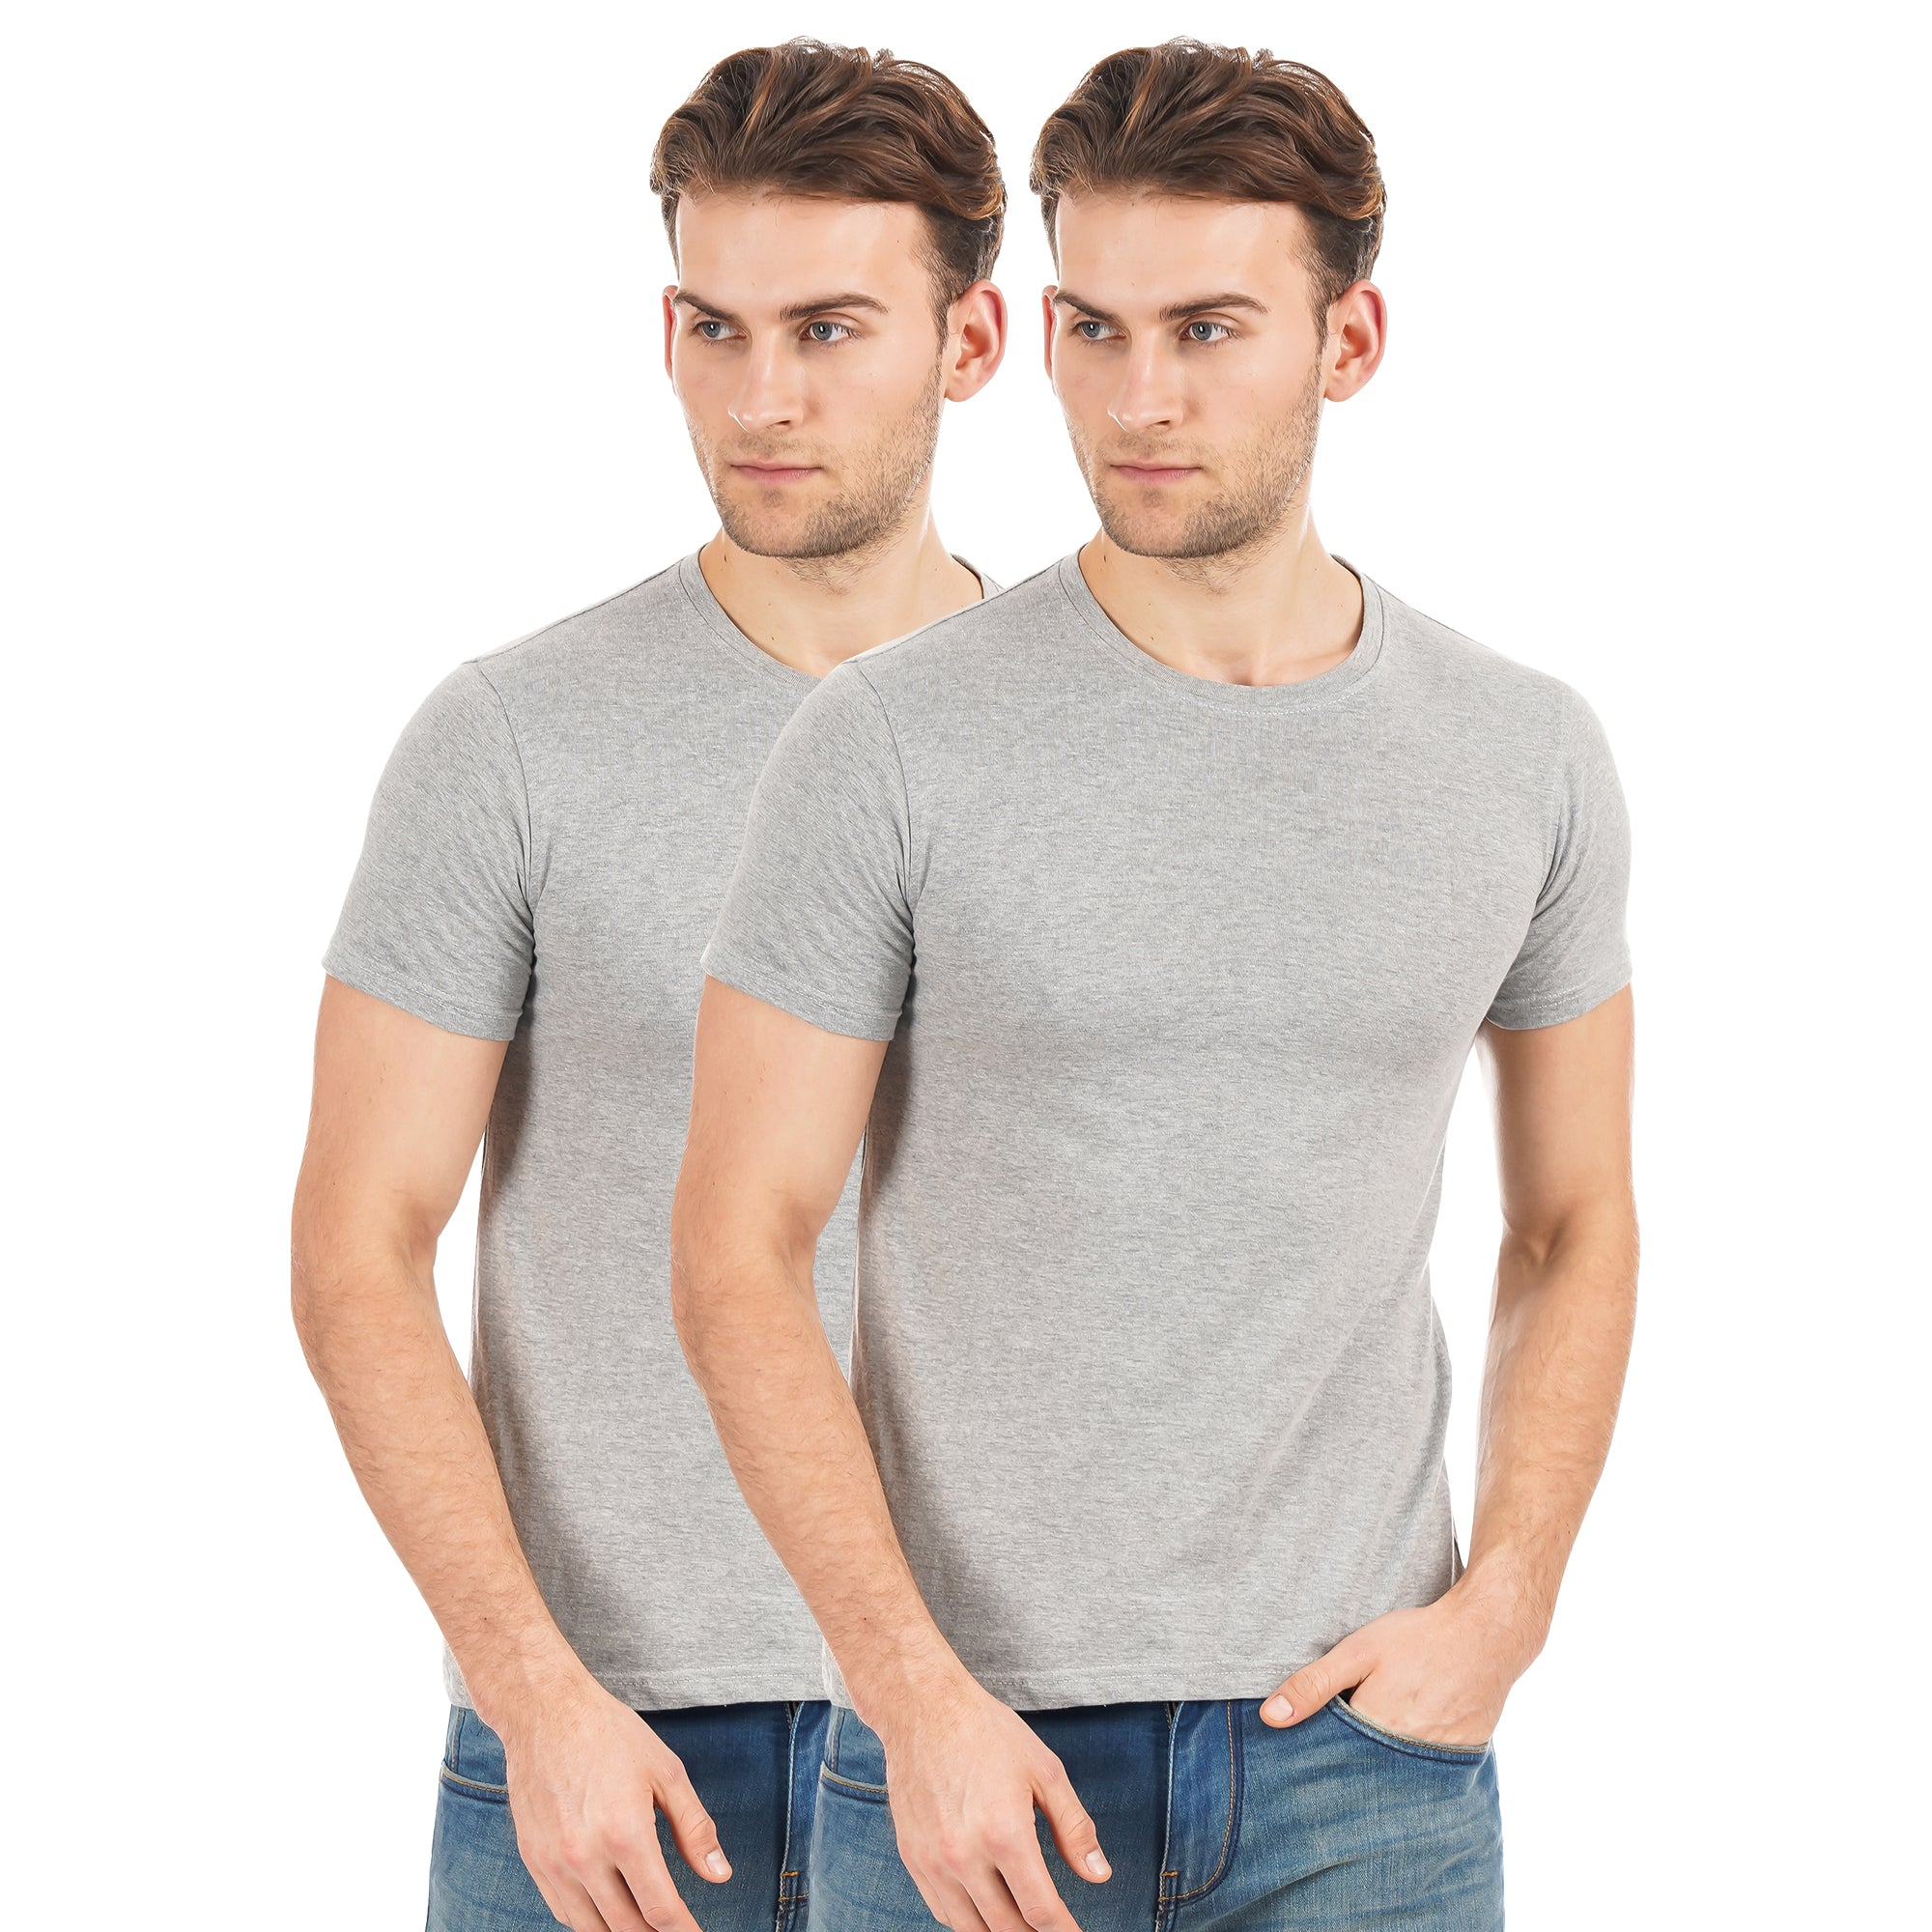 Rock Hooper-Men's Half Sleeve Cotton Plain White/Black/Grey Round Neck T-Shirt(Pack of 2)